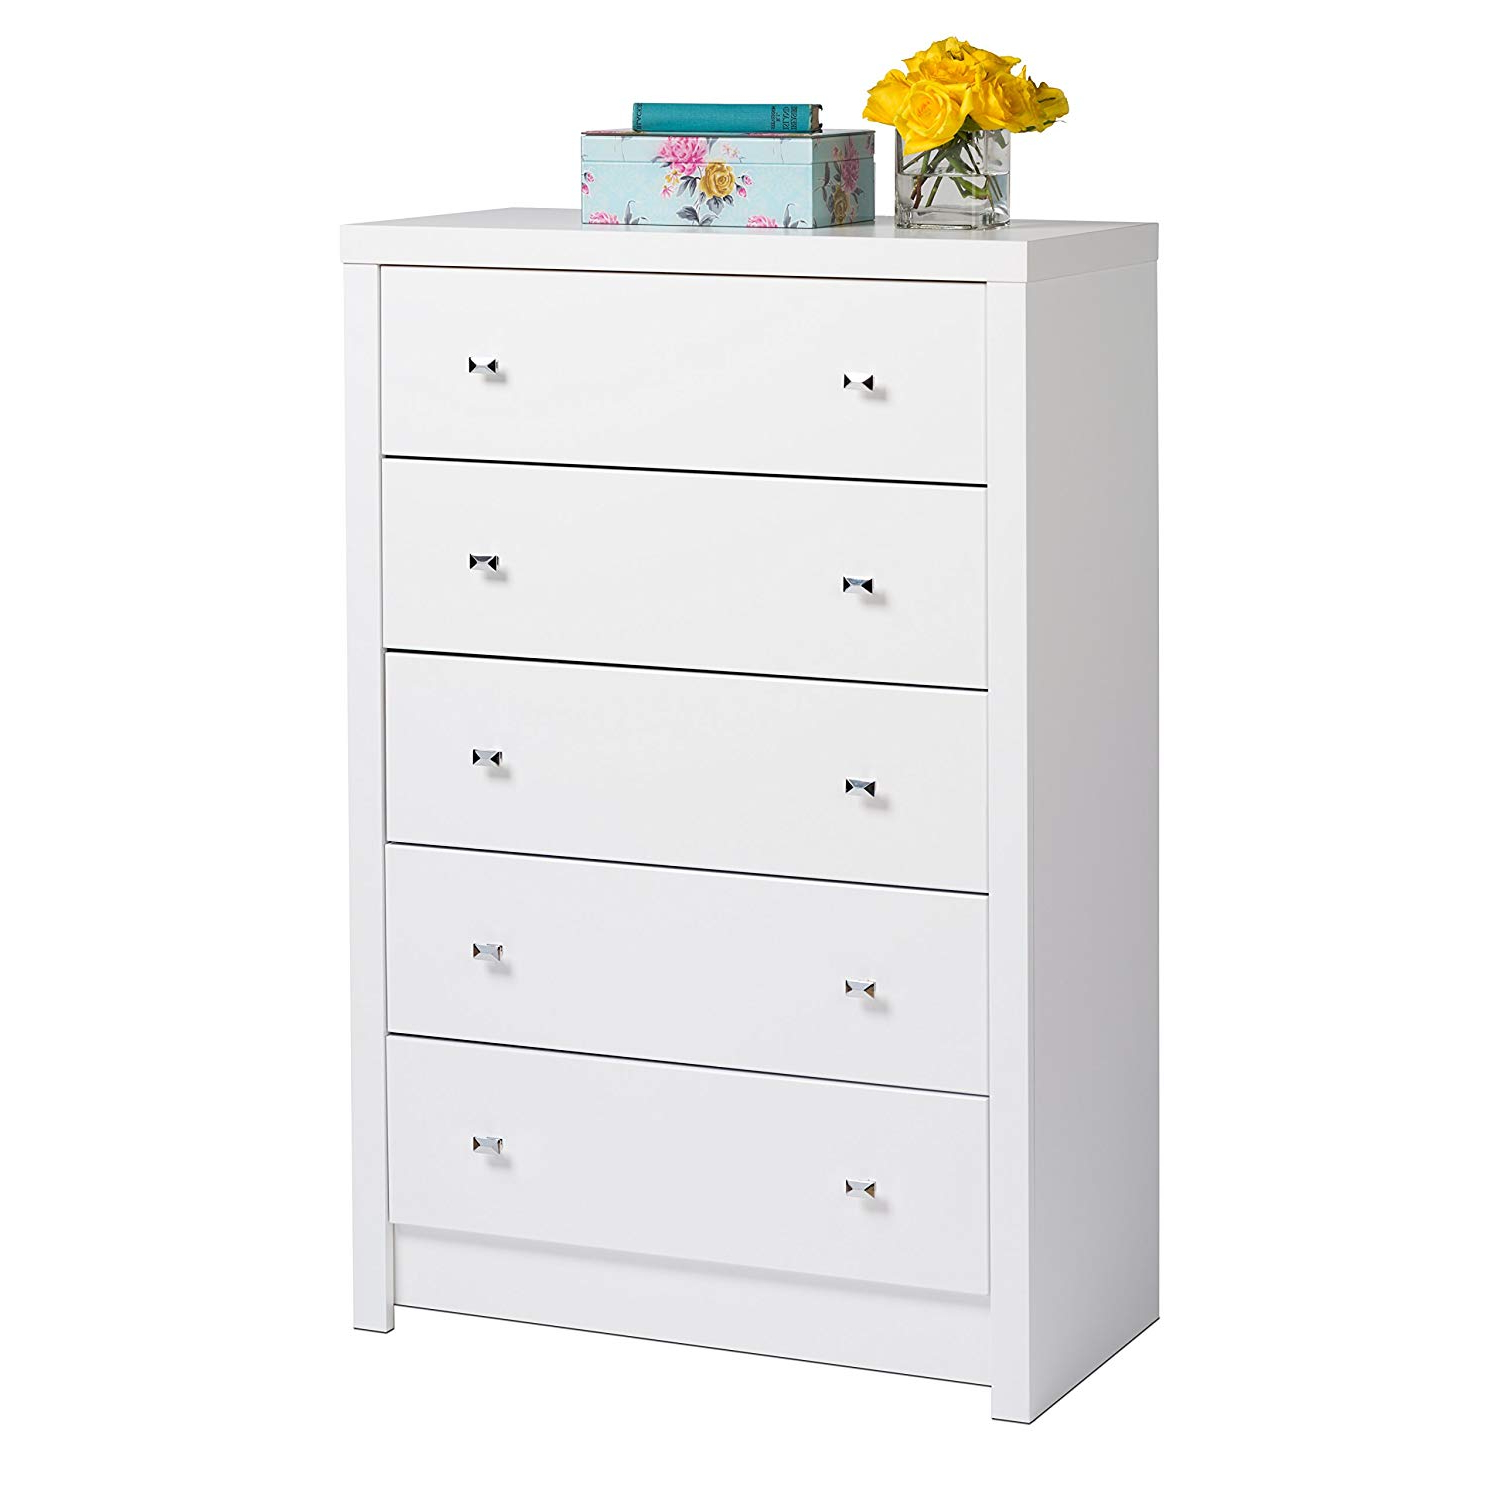 Most Recently Released Calla 5 Piece Dining Sets With Regard To Amazon: Prepac Wdbr 0550 1 White Calla 5 Drawer Chest, King (View 17 of 25)